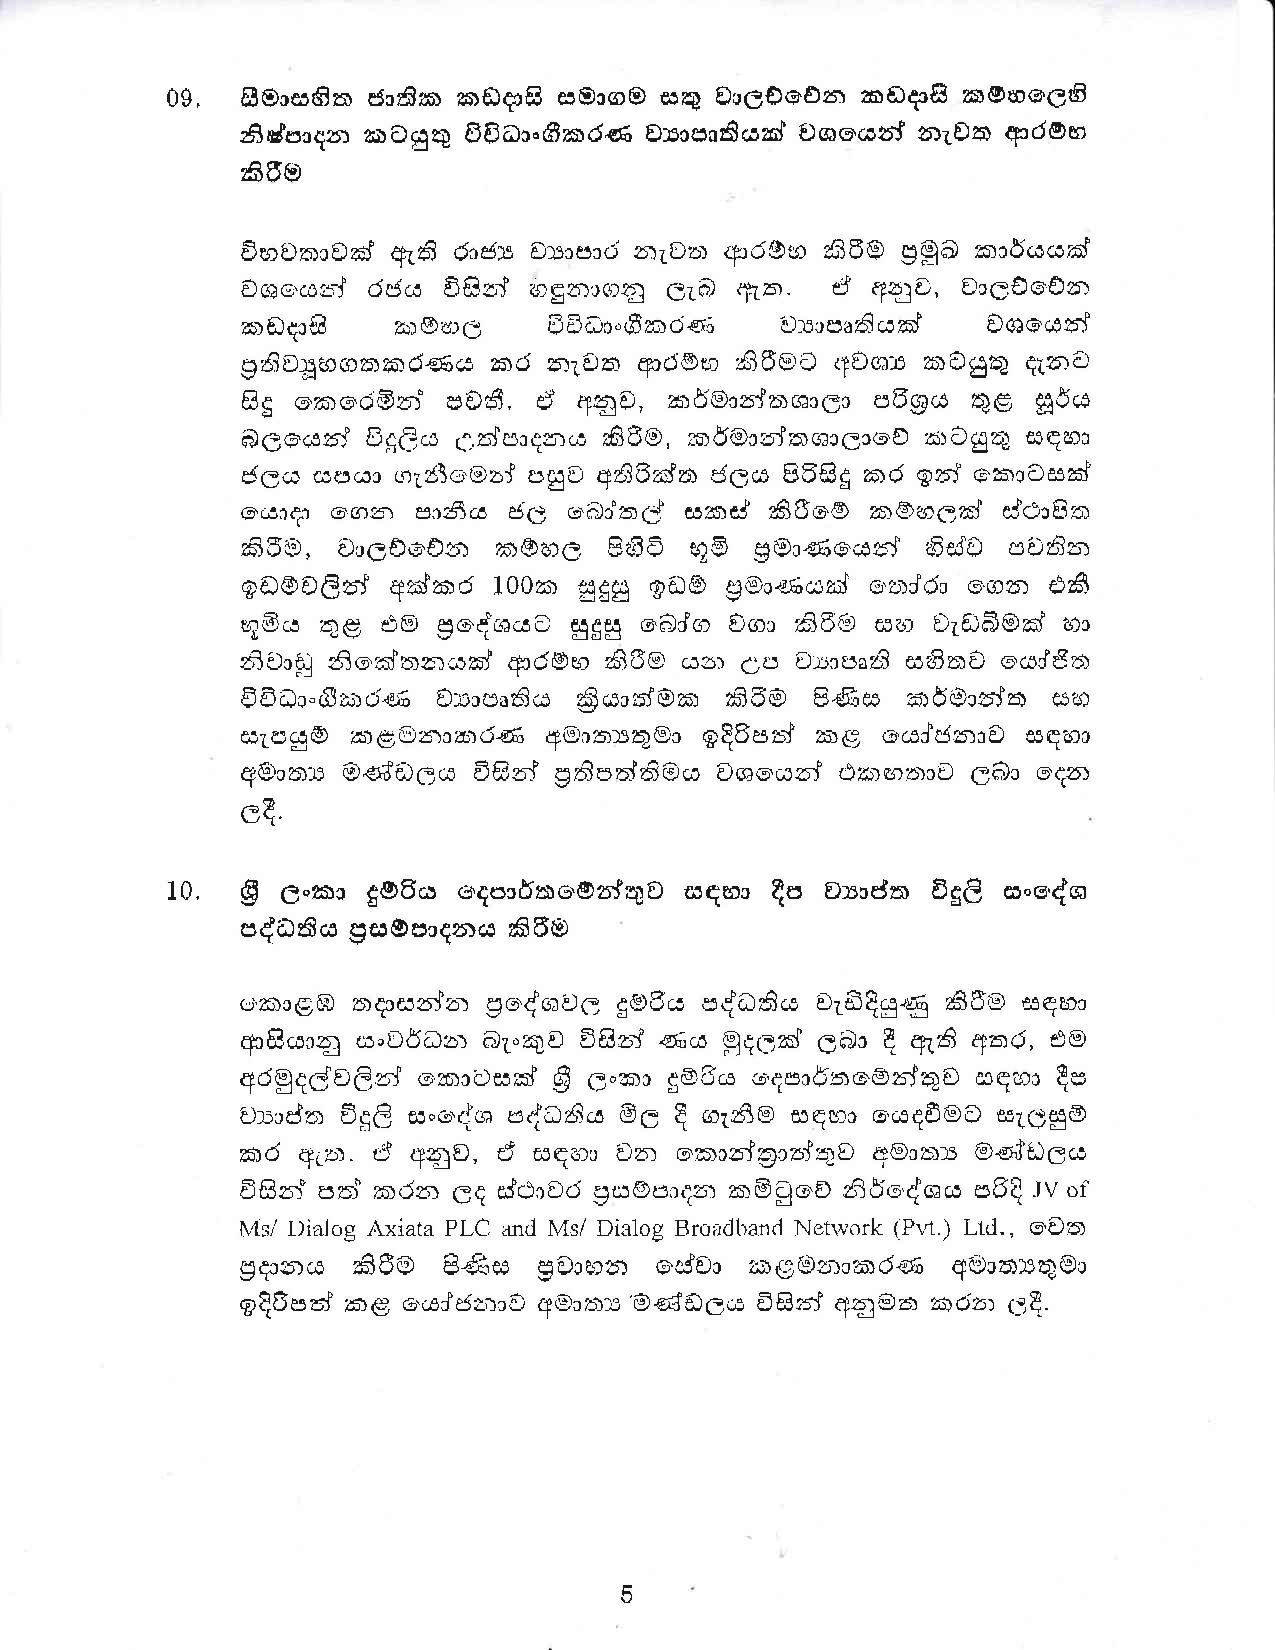 Cabinet Decision on sinhala 18.03.2020 page 005